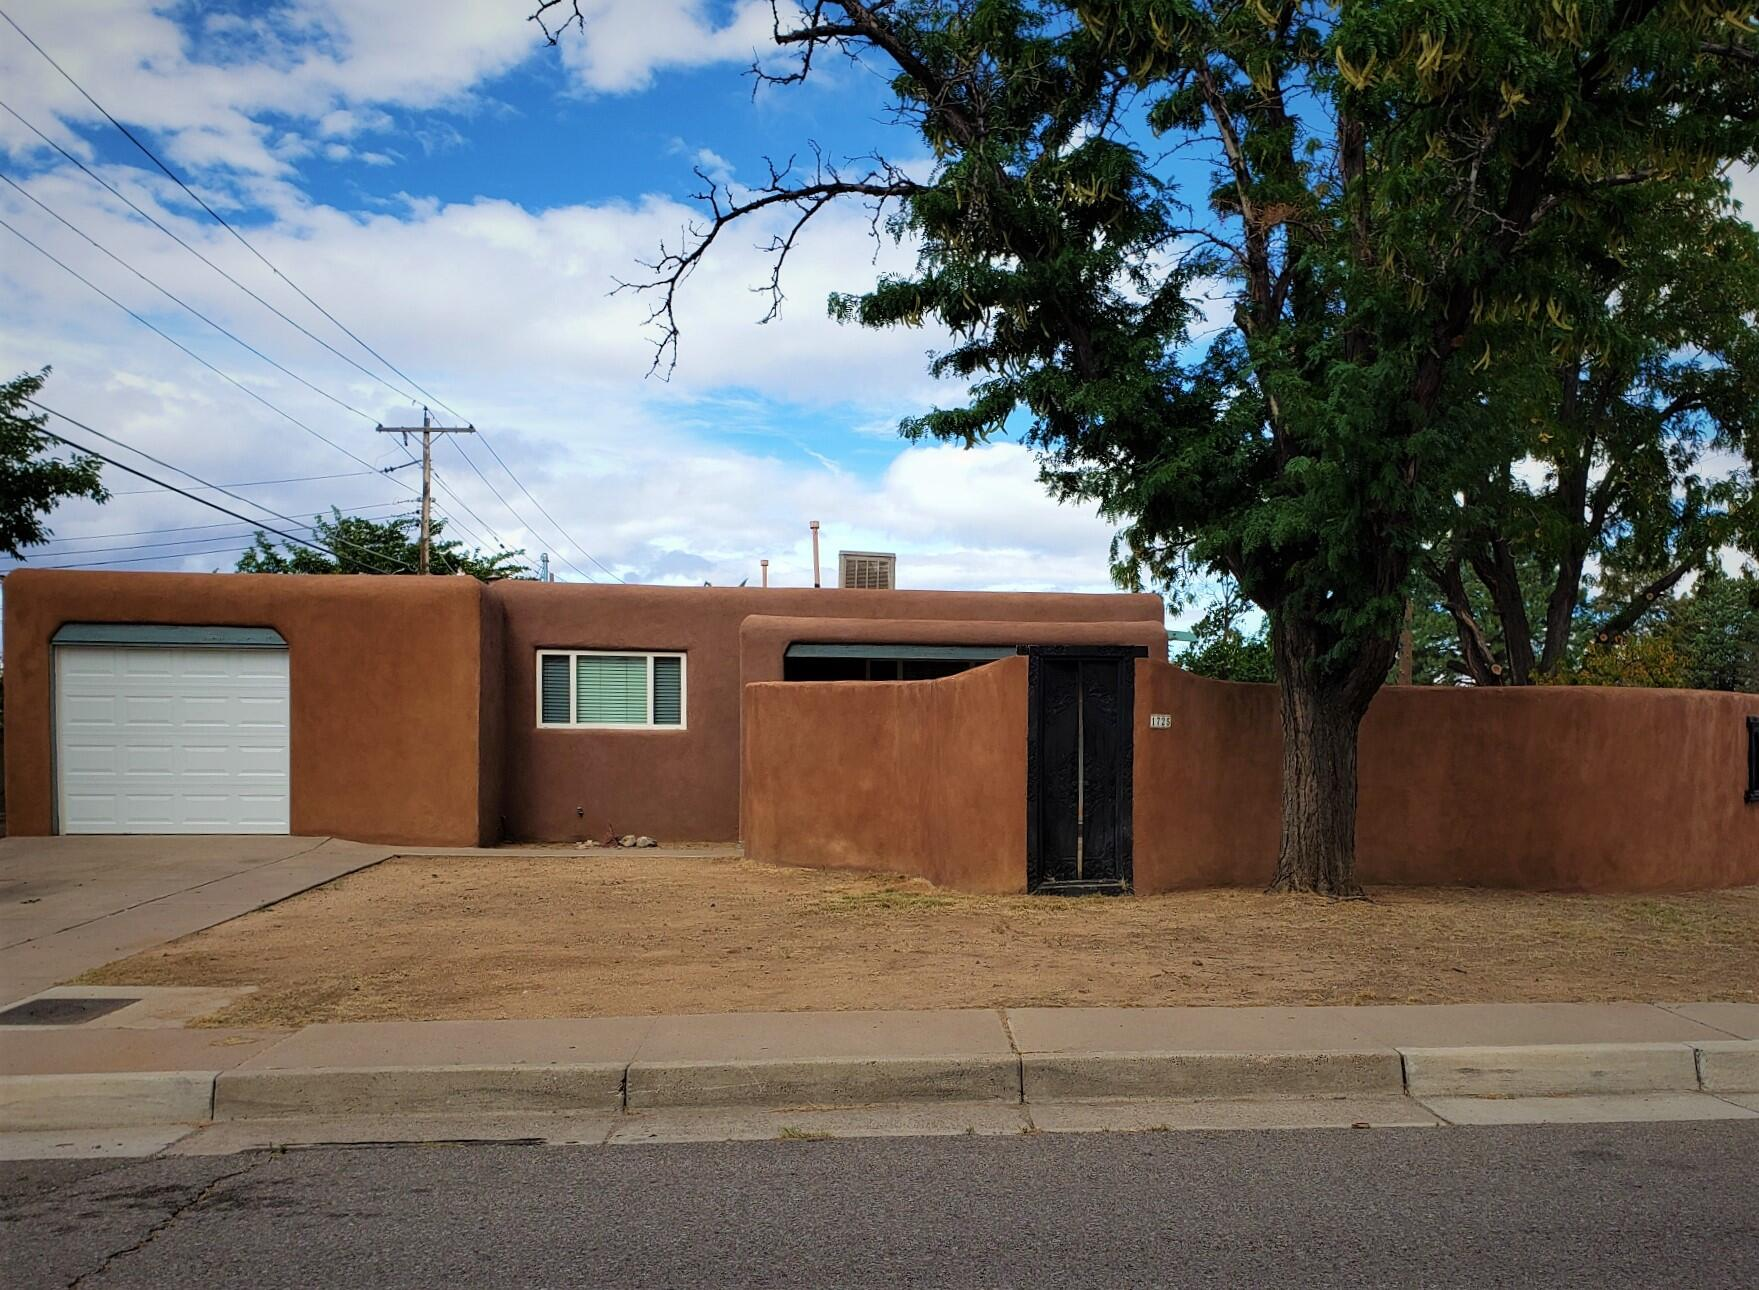 Darling 3 bdrm, 1.75 ba., 1 cg  with mountiain view in perfect location! Blocks from Uptown/Trader Joes, quick commute to Kirtland AFB or I-40 access.Sandia High area. Freshly painted, ceramic tile thruout, except carpet in bdrms. Nice condition, ready to move in. Spacious living room, large open kitchen with  dining room. Gas stove. Master bdrm. has french doors to huge open patio and 3/4 bath. Large lot has charming courtyard front entry and  privacy block walls surrounding.  Large garden/ lawn areas with auto sprinklers. If you want  to raise your own produce or have a spectacular outside living area, this is the place! Oversized 1-car garage with room for your work area or storage. Small storage  bldg. in back.Grab this one! It's going!!